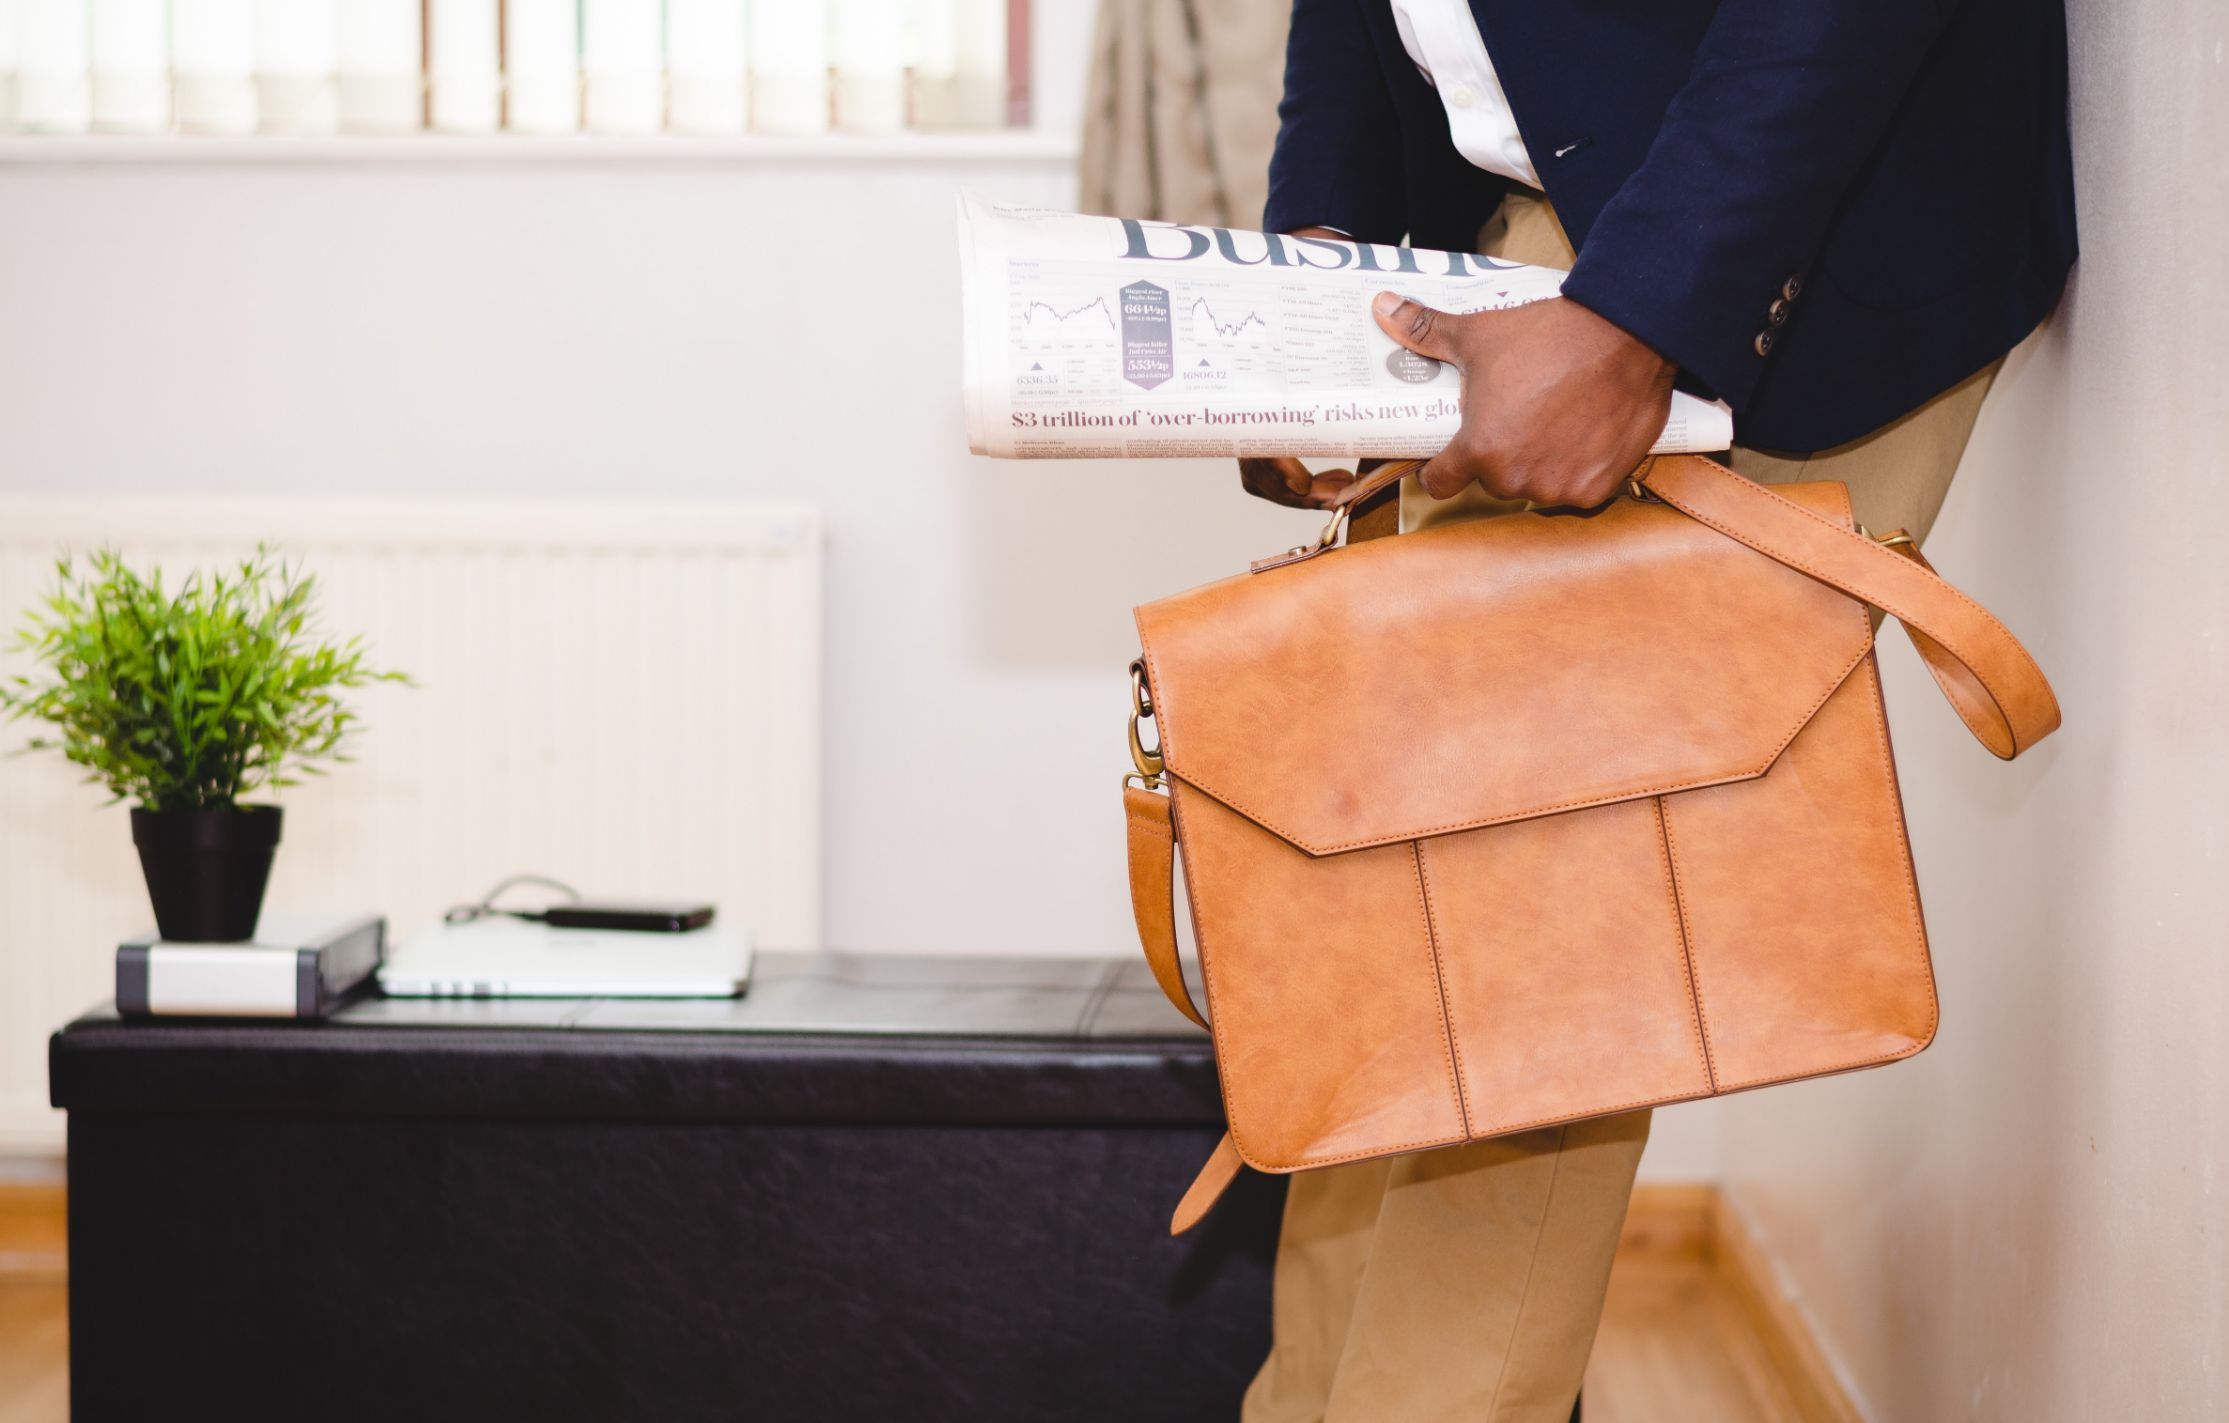 Man holding a business newspaper and a briefcase